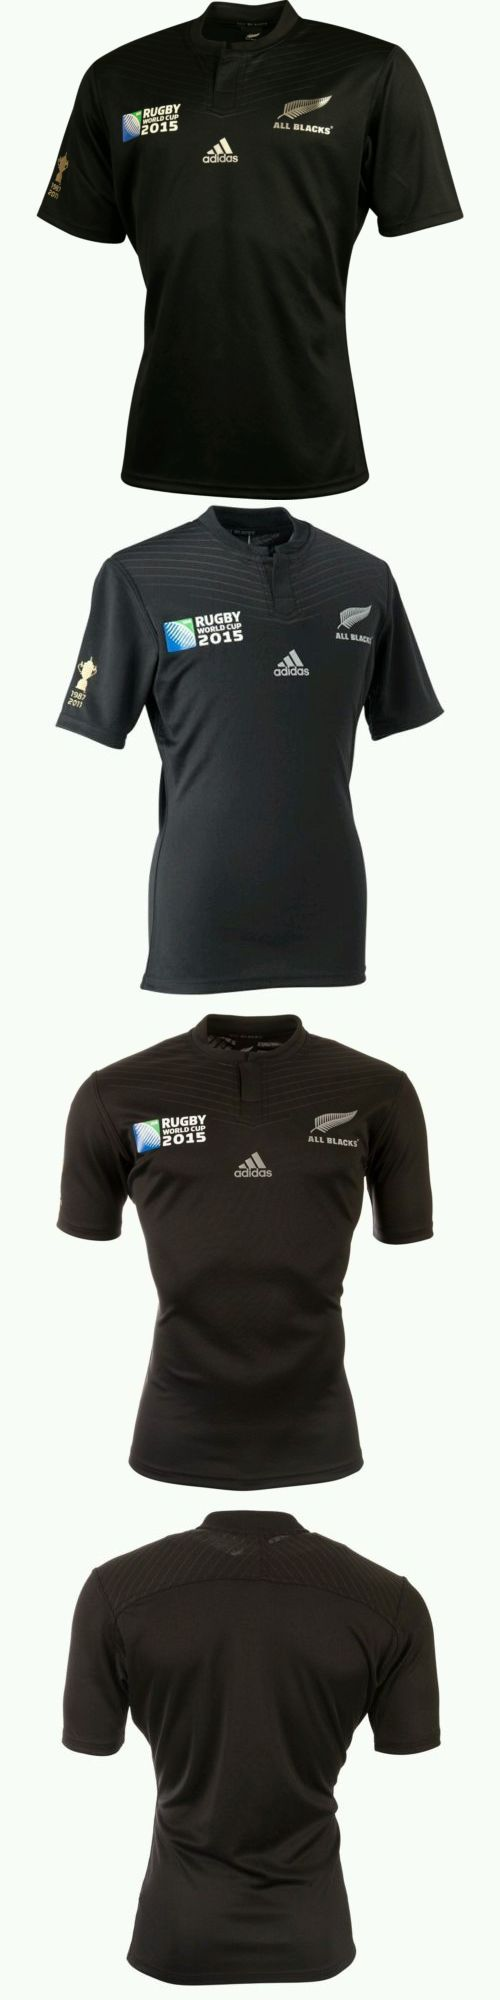 Rugby 21563: Bnwt New Zealand All Blacks Rwc 2015 Replica Rugby Jersey Size 2Xlarge BUY IT NOW ONLY: $99.95